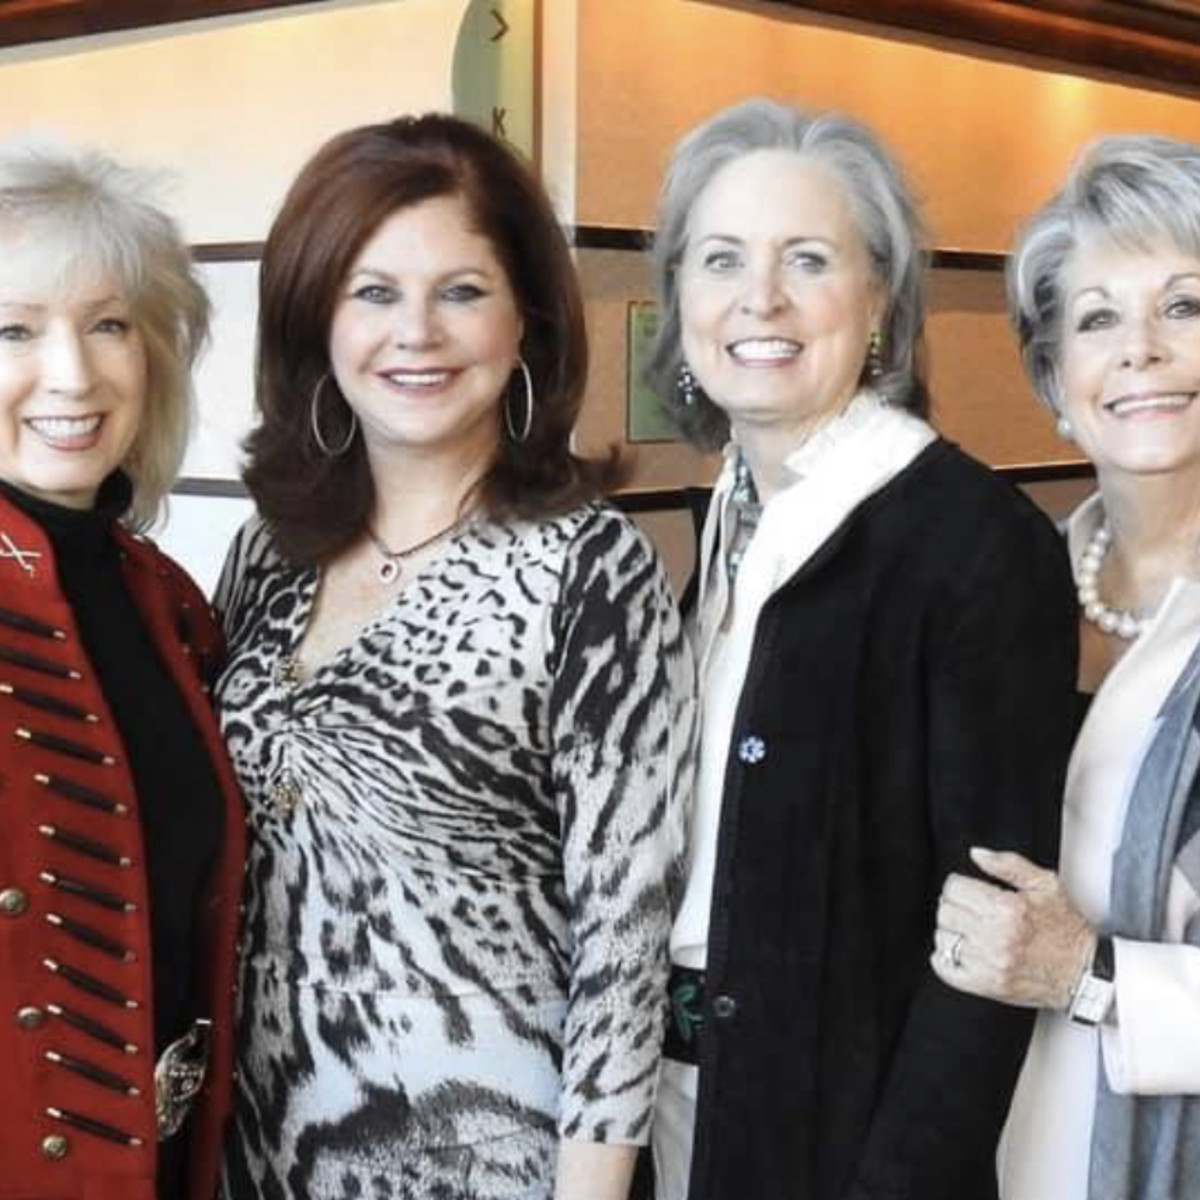 Rodeo Trailblazer Awards Luncheon 2020 Pat Mann Phillips (HLSR Executive Committee), Laura Kent, Sharleen Walkoviak (HLSR Lifetime Vice President) and Paula Robinson